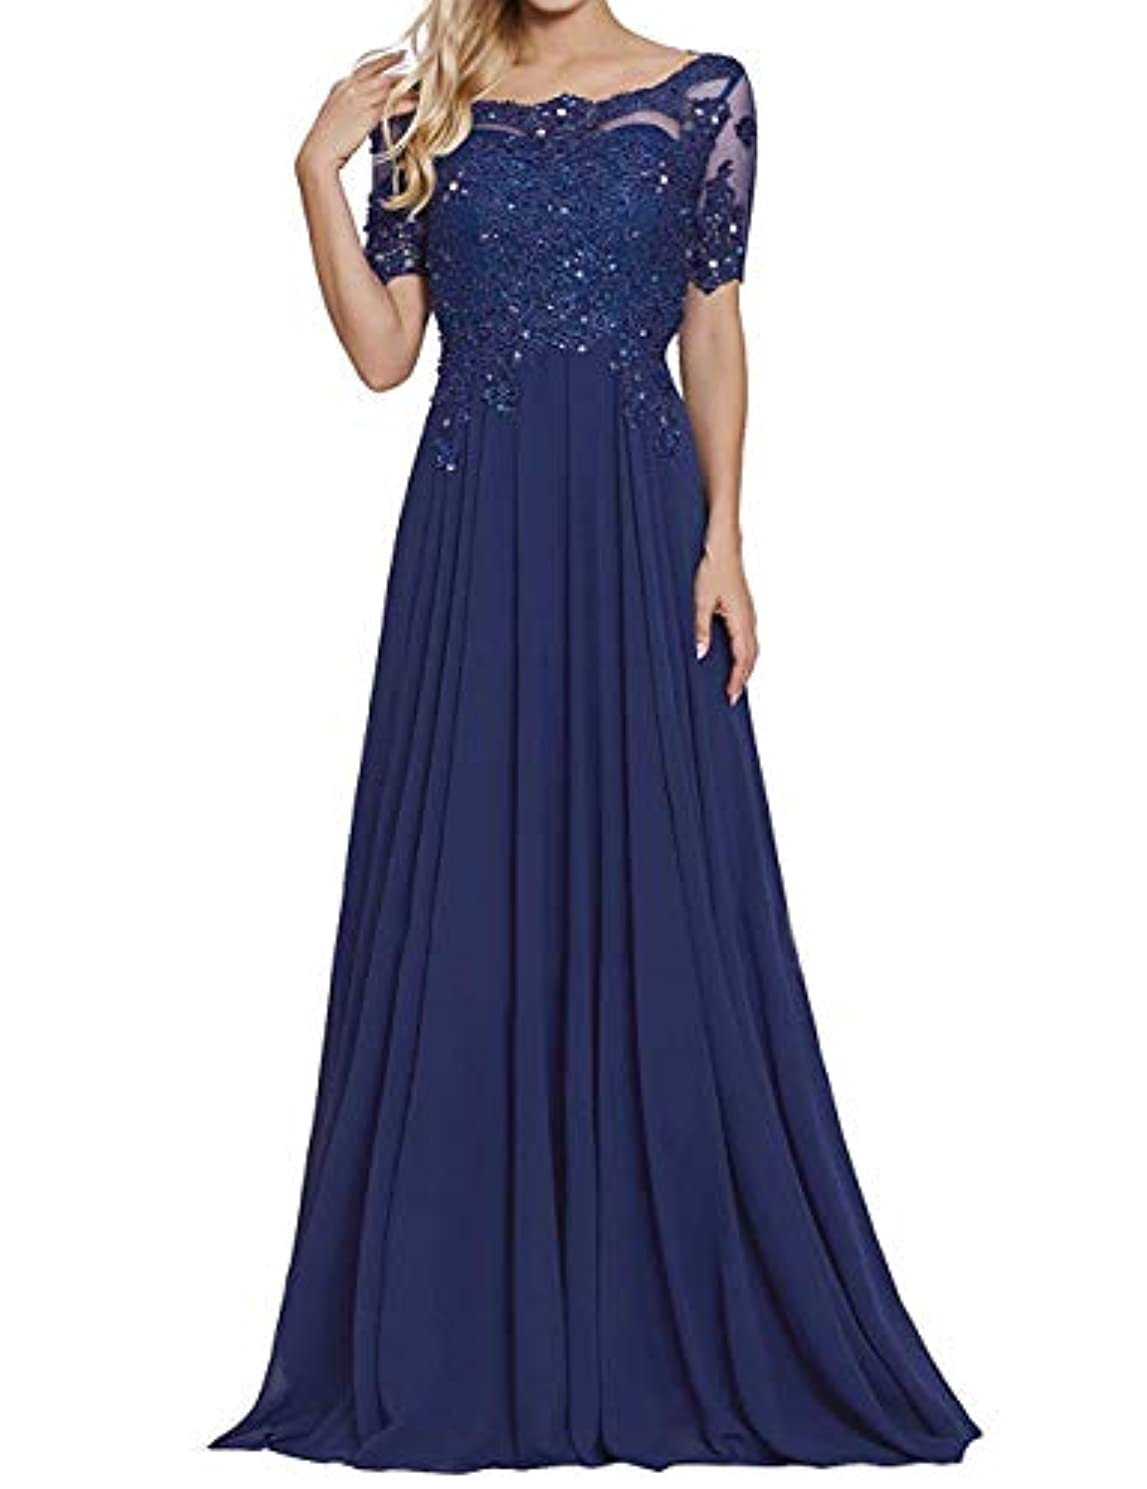 urph56456Kit Women's Lace Appliques Chiffon Mother of The Bride Dresses Scoop Neck Beaded Prom Evening Party Formal Gowns